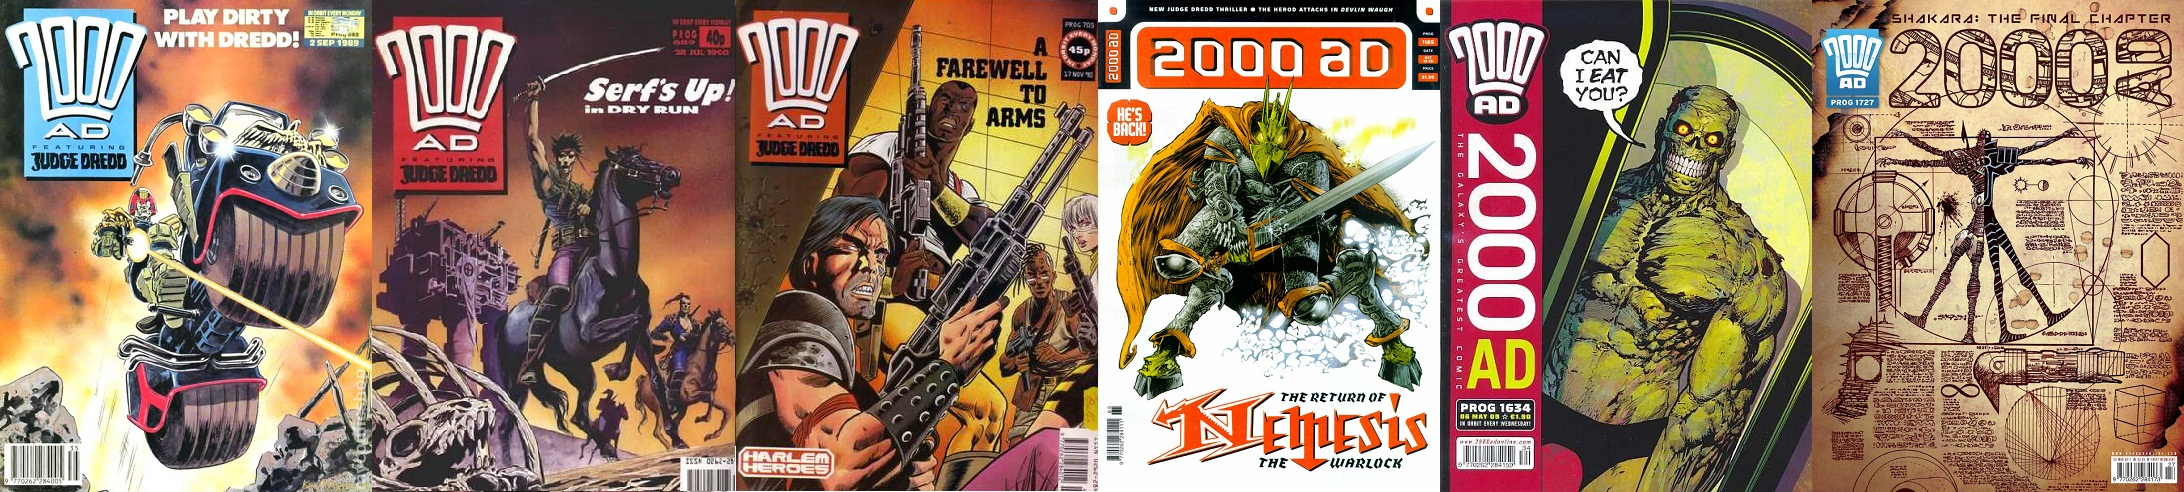 2000AD covers by Kev Hopgood and Henry Flint